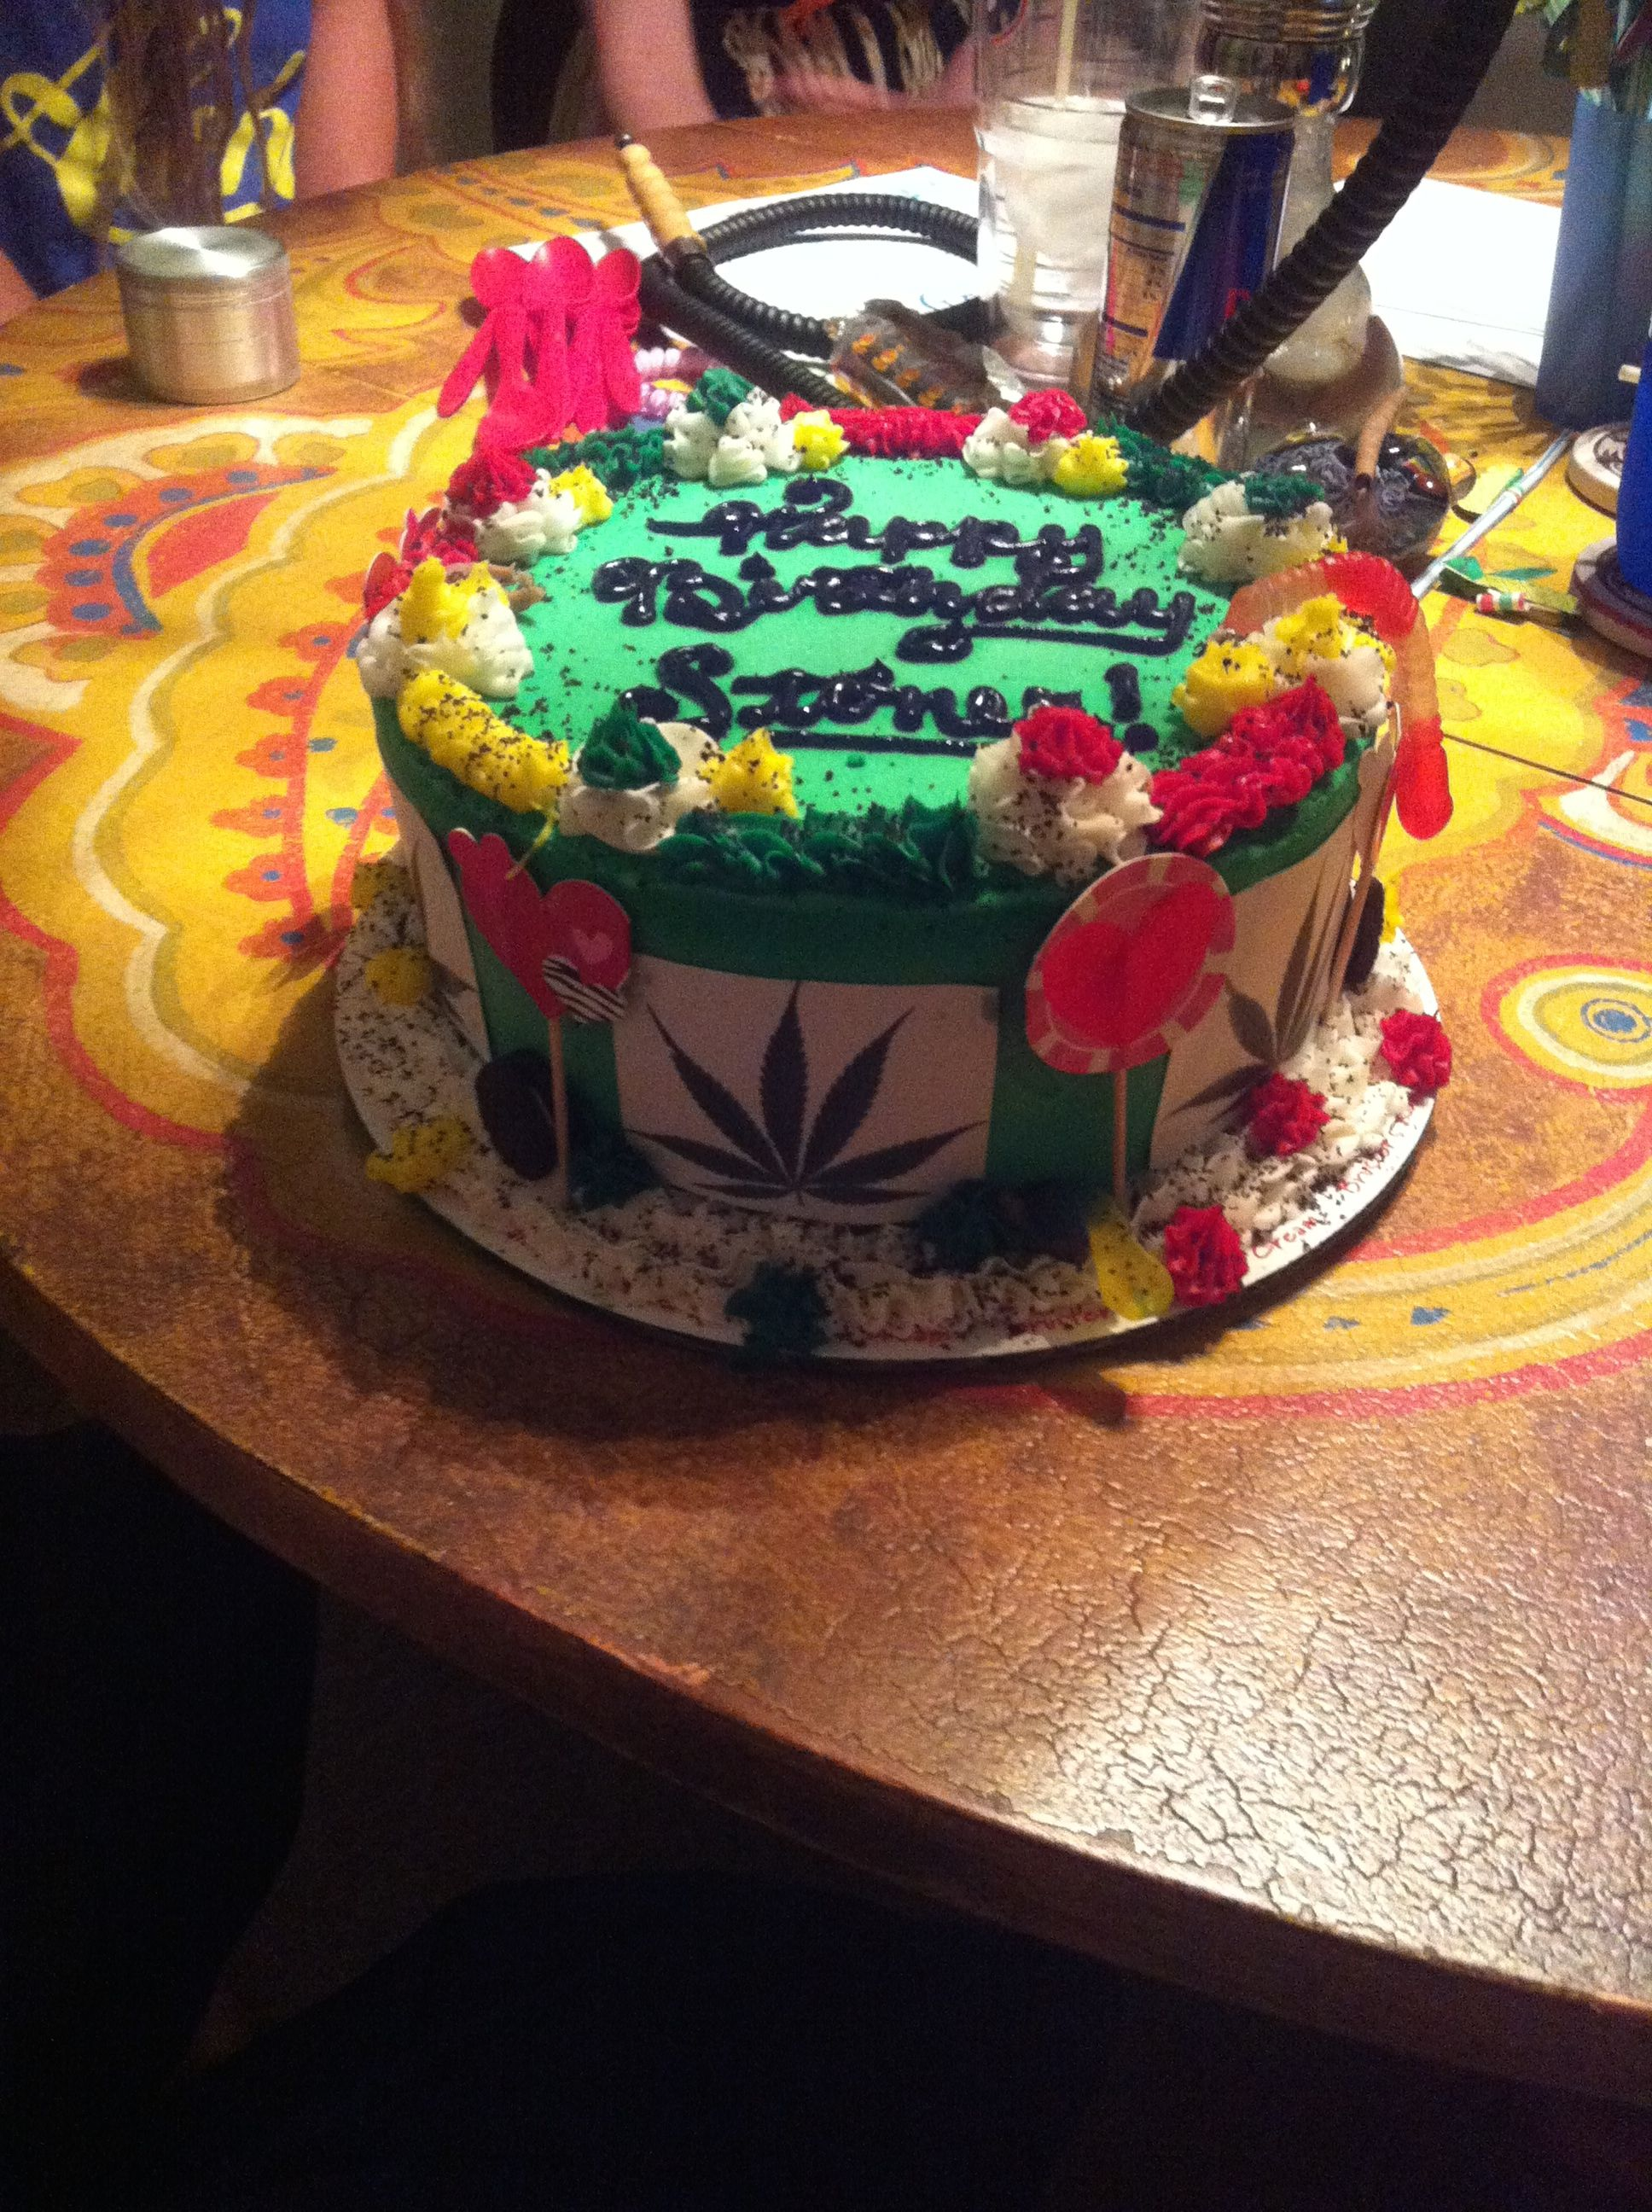 Stoner Birthday Cake | cake ideas | Birthday cake, Cake, Desserts